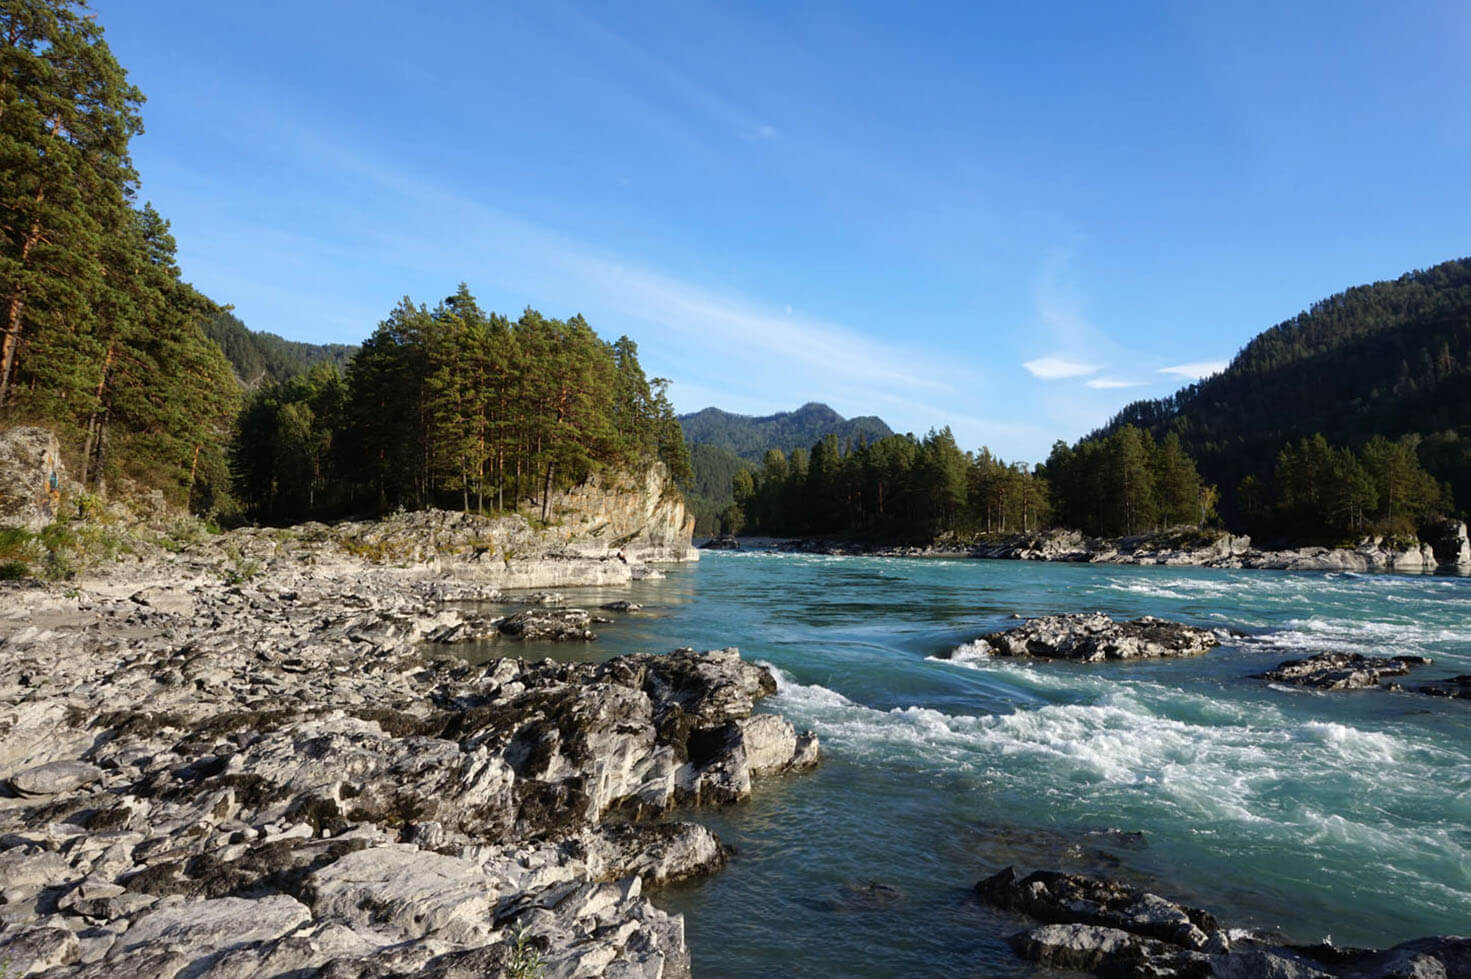 Katun River - Altai Mountains